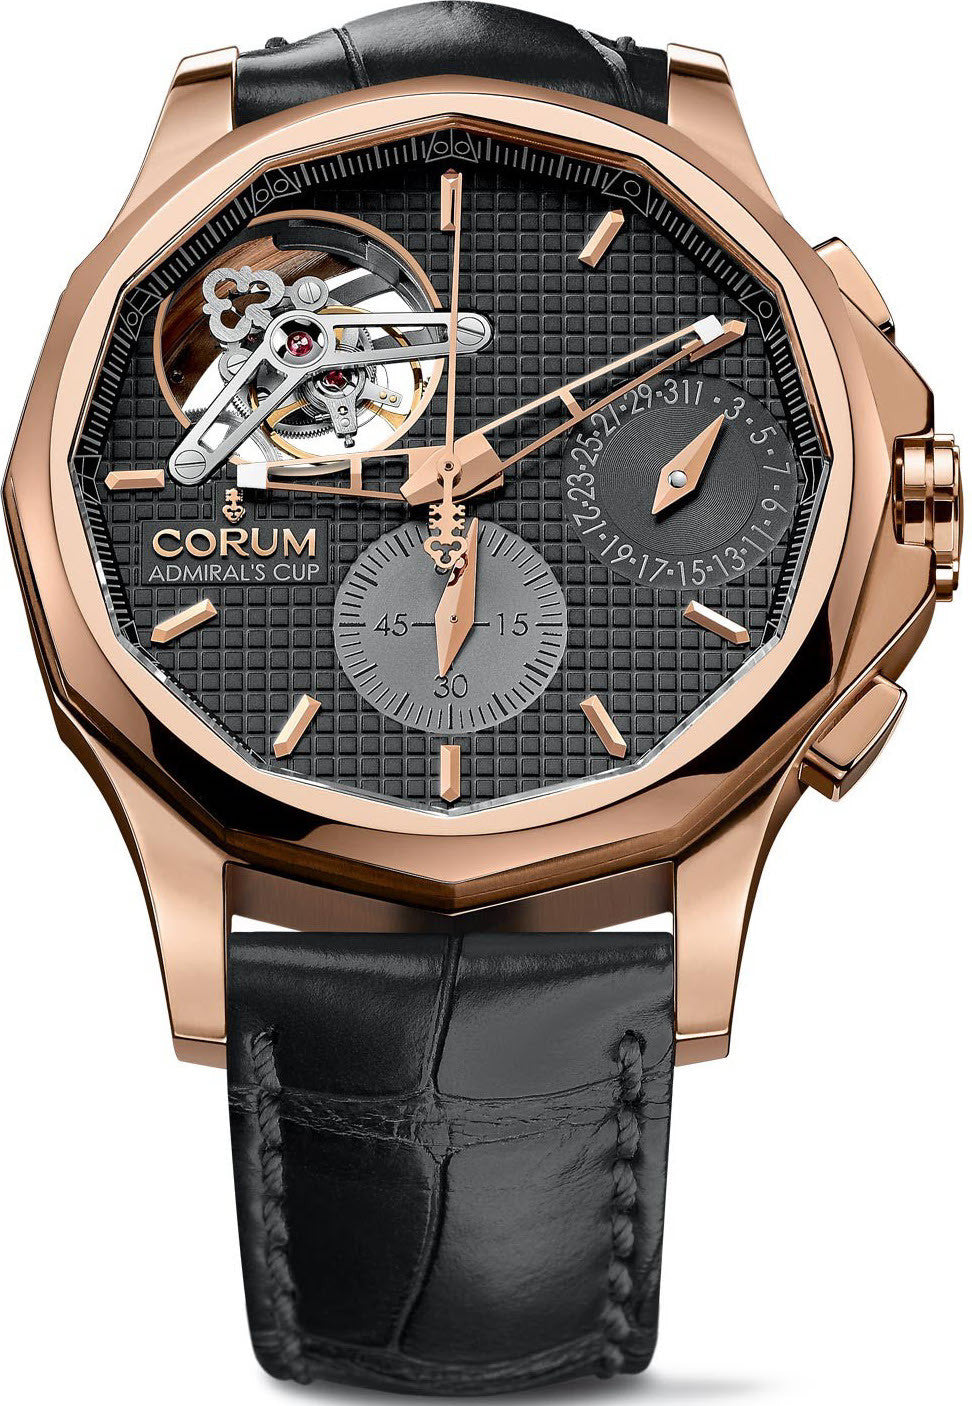 Bargain Corum Watch Admirals Seafender 47 Tourbillon Chronograph Stockists